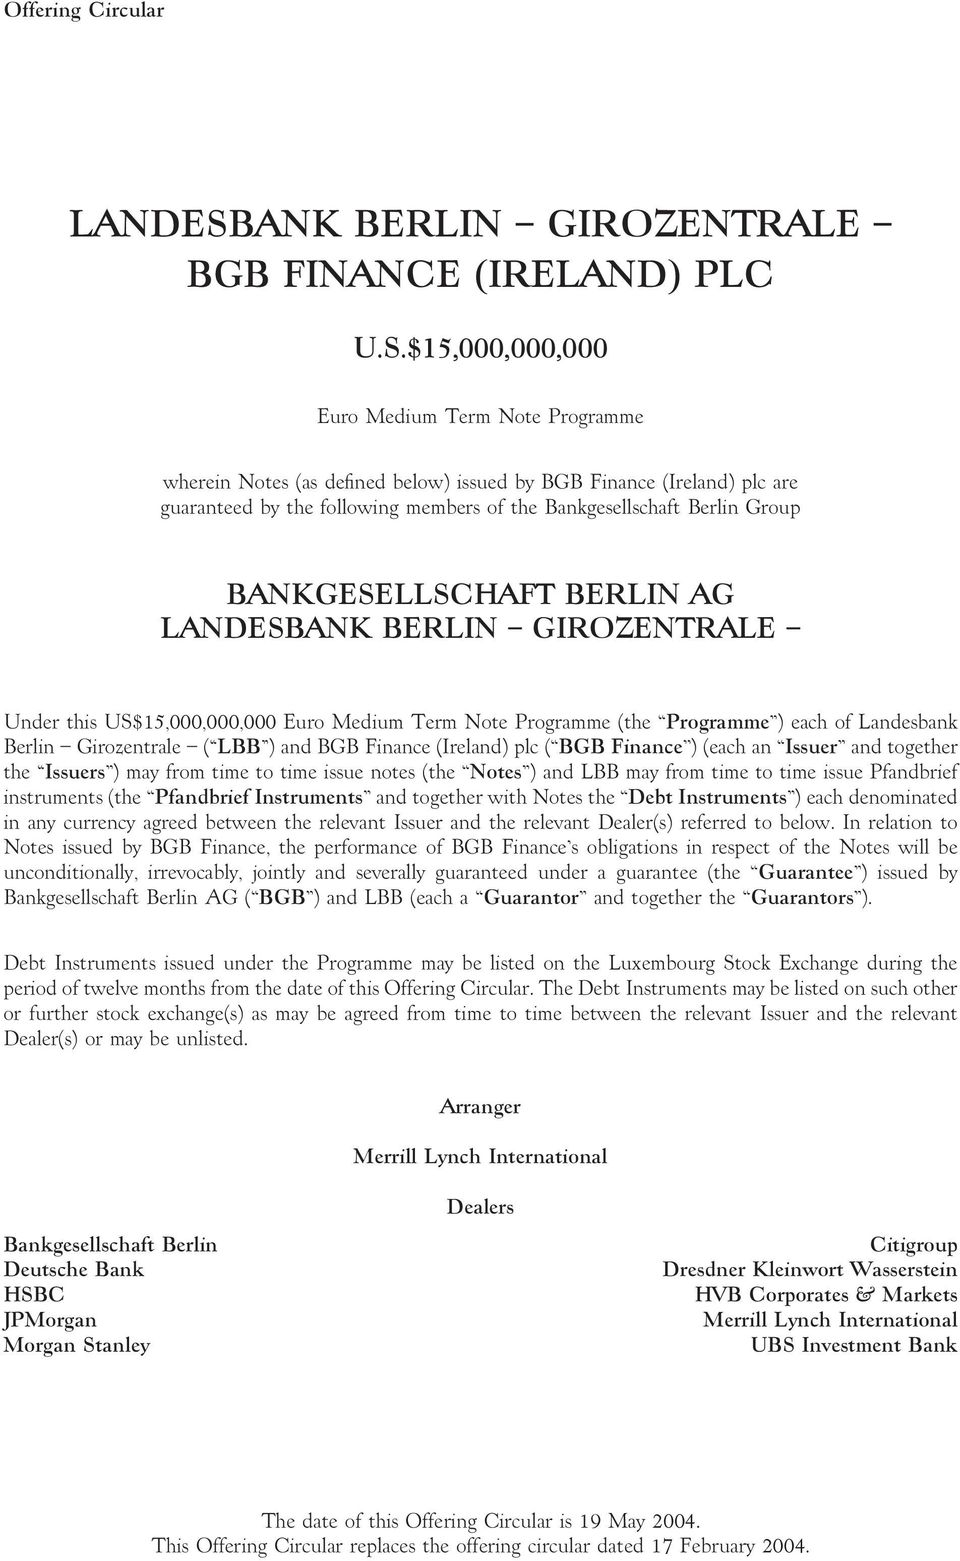 $15,000,000,000 Euro Medium Term Note Programme wherein Notes (as defined below) issued by BGB Finance (Ireland) plc are guaranteed by the following members of the Bankgesellschaft Berlin Group